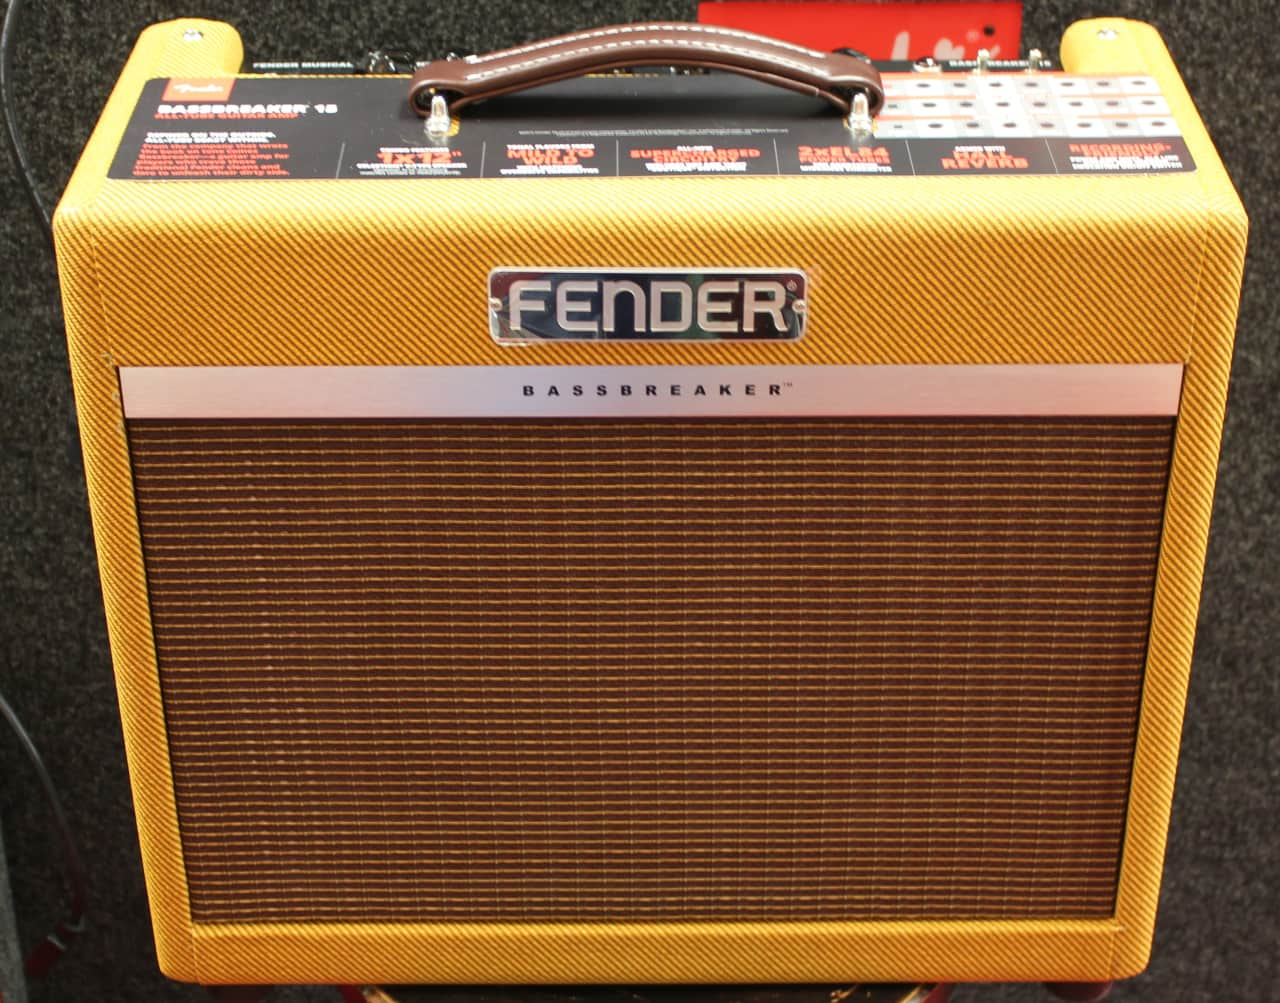 fender fsr bassbreaker 15 lacquered tweed limited edition reverb. Black Bedroom Furniture Sets. Home Design Ideas